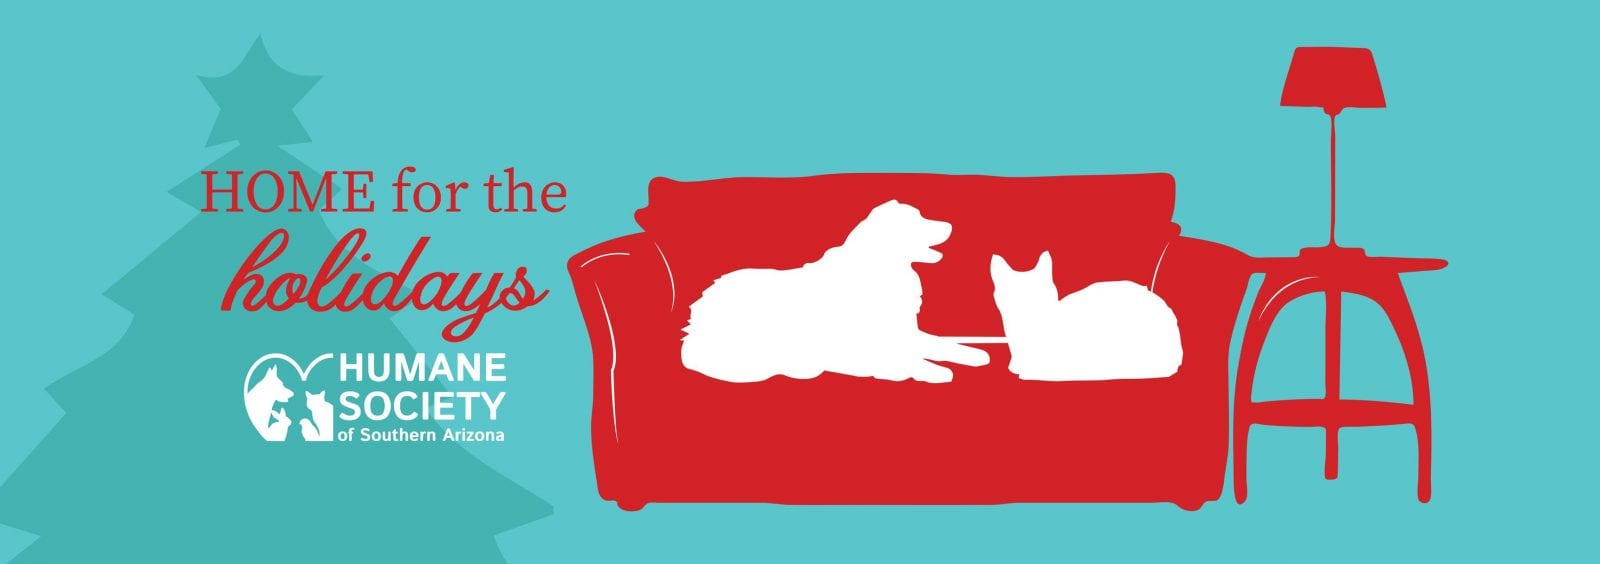 graphic - home for the holidays banner ad